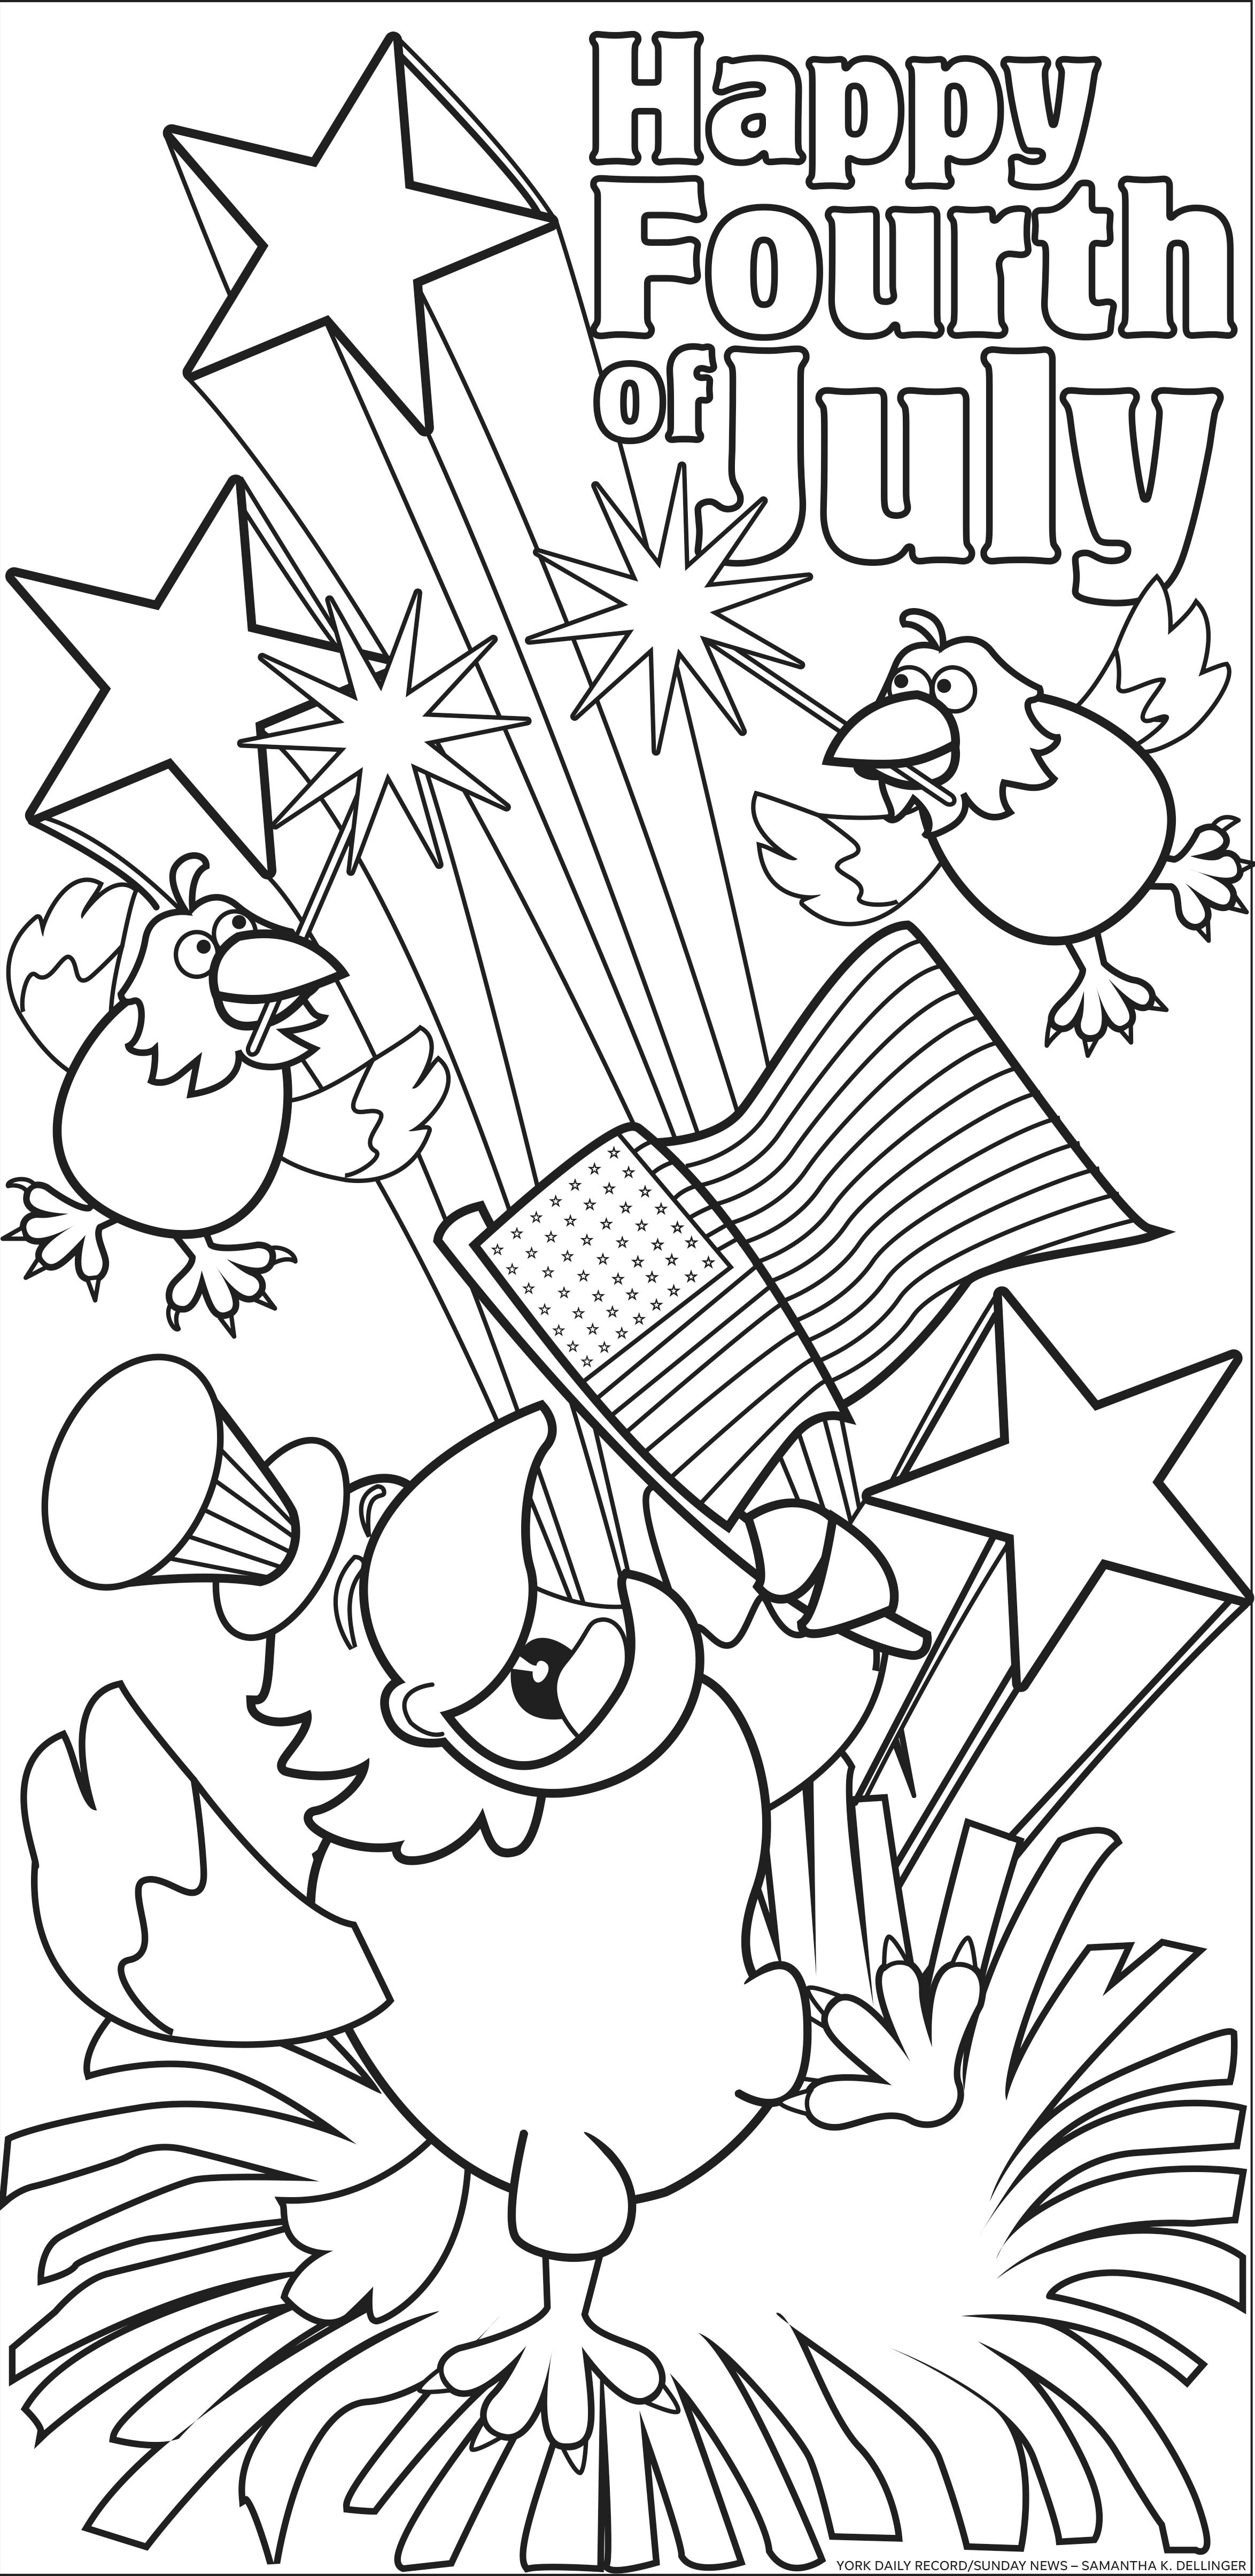 4th of july coloring pages patriotic 4th of july coloring pages july 4th free of july 4th coloring pages